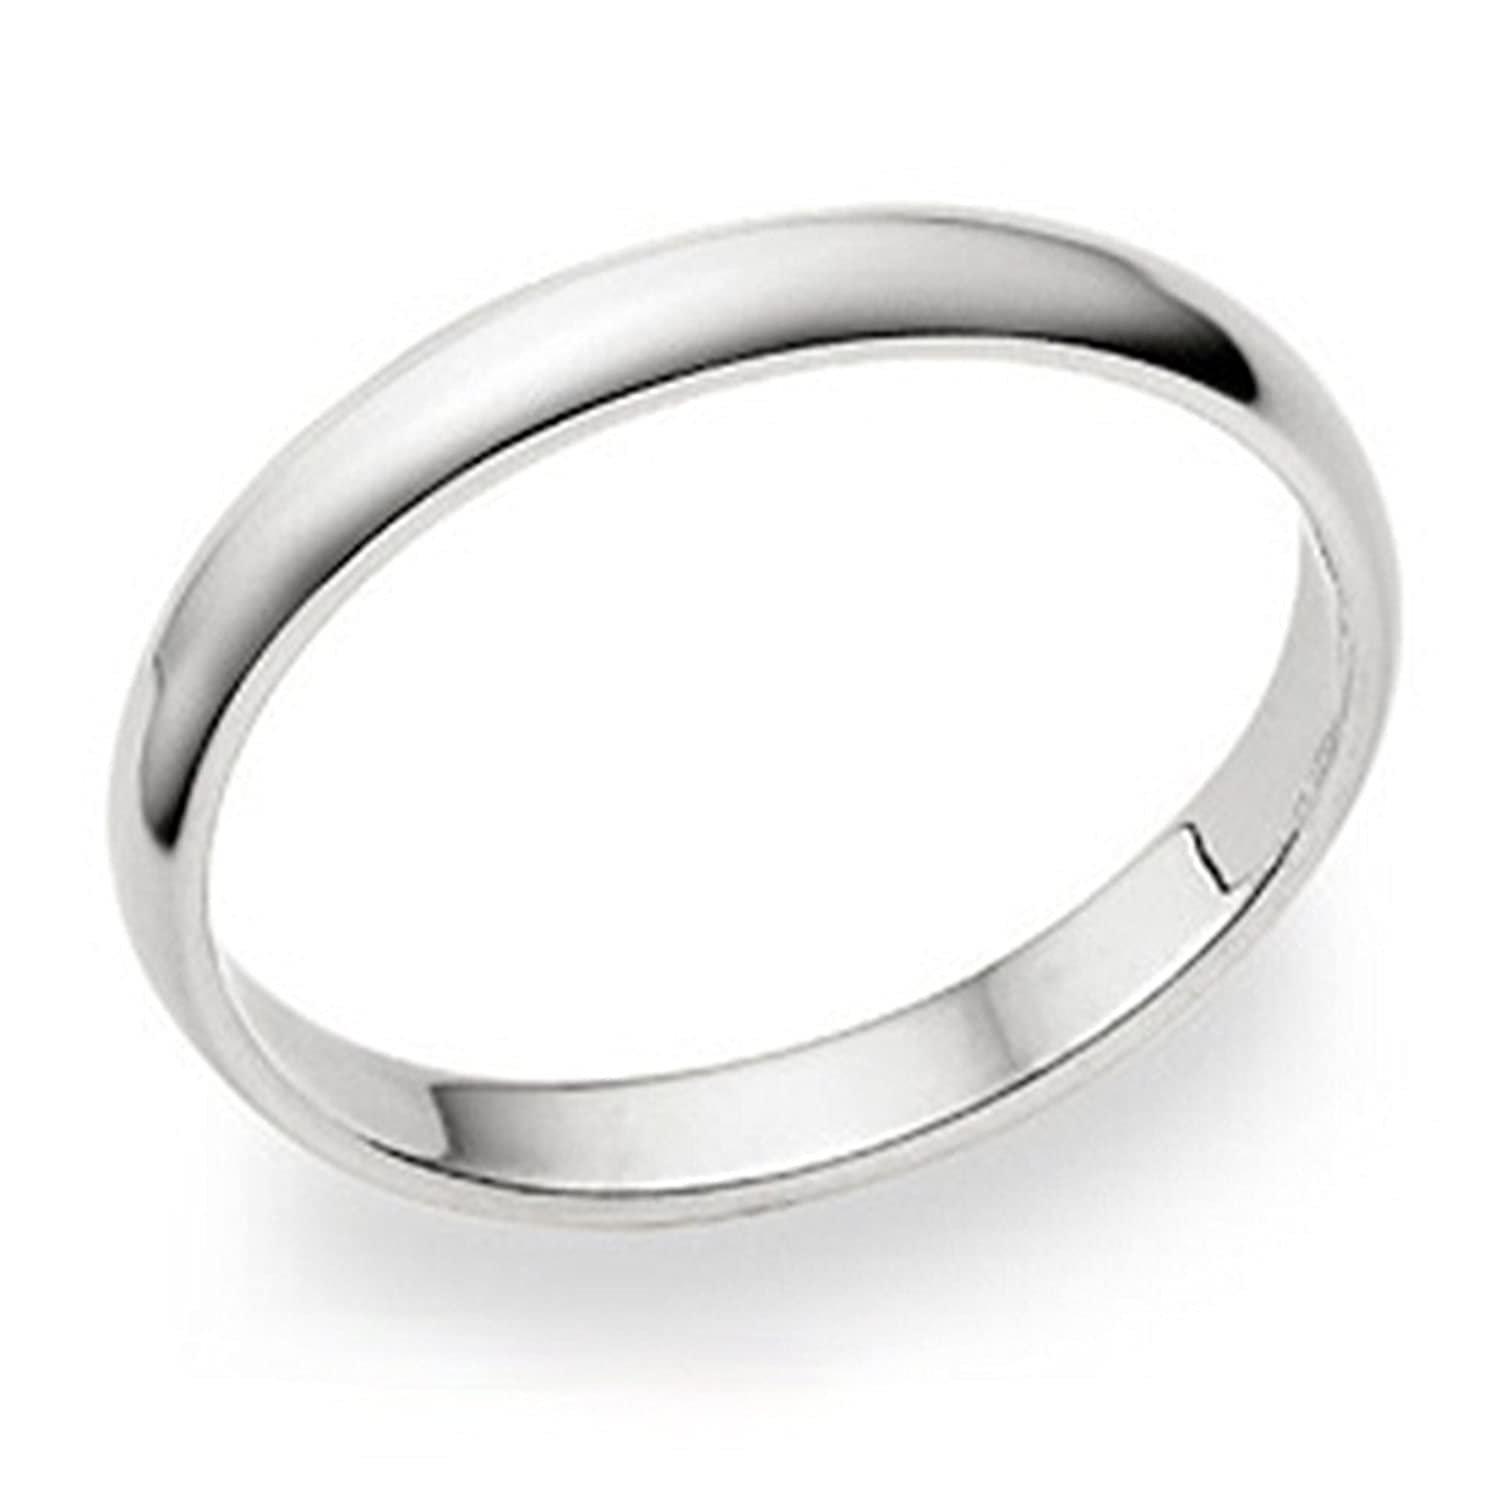 simple silver item polished in finish male accessories rings domed wedding fit comfort with bands tone from stainless steel jewelry